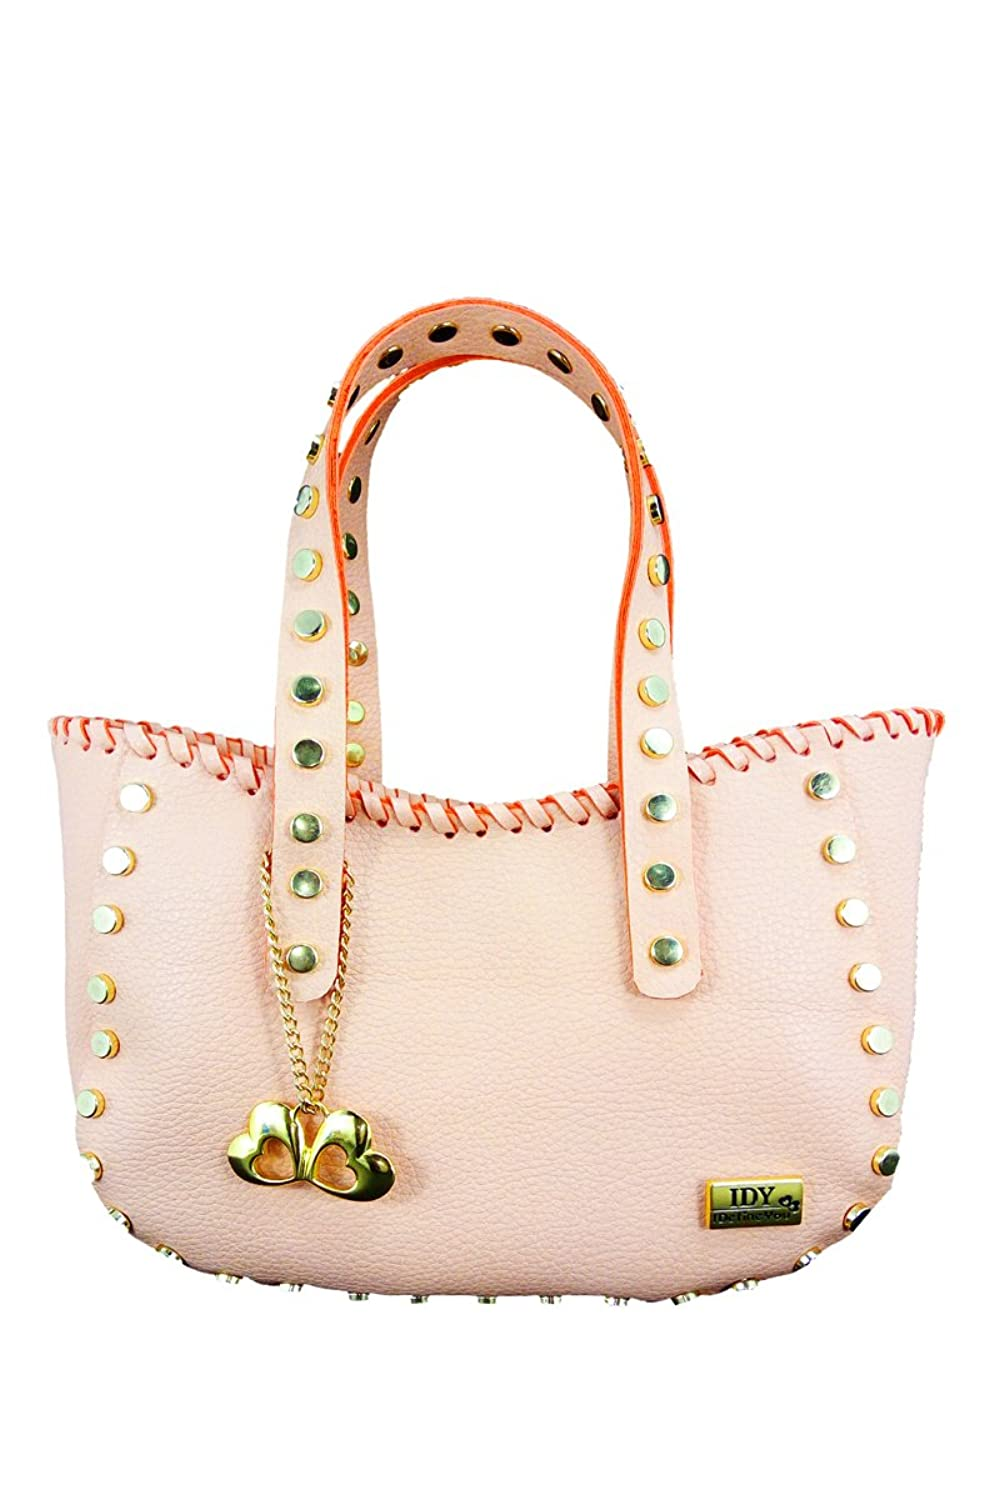 Anglopanglo Peach Color Women's Shoulder Bag